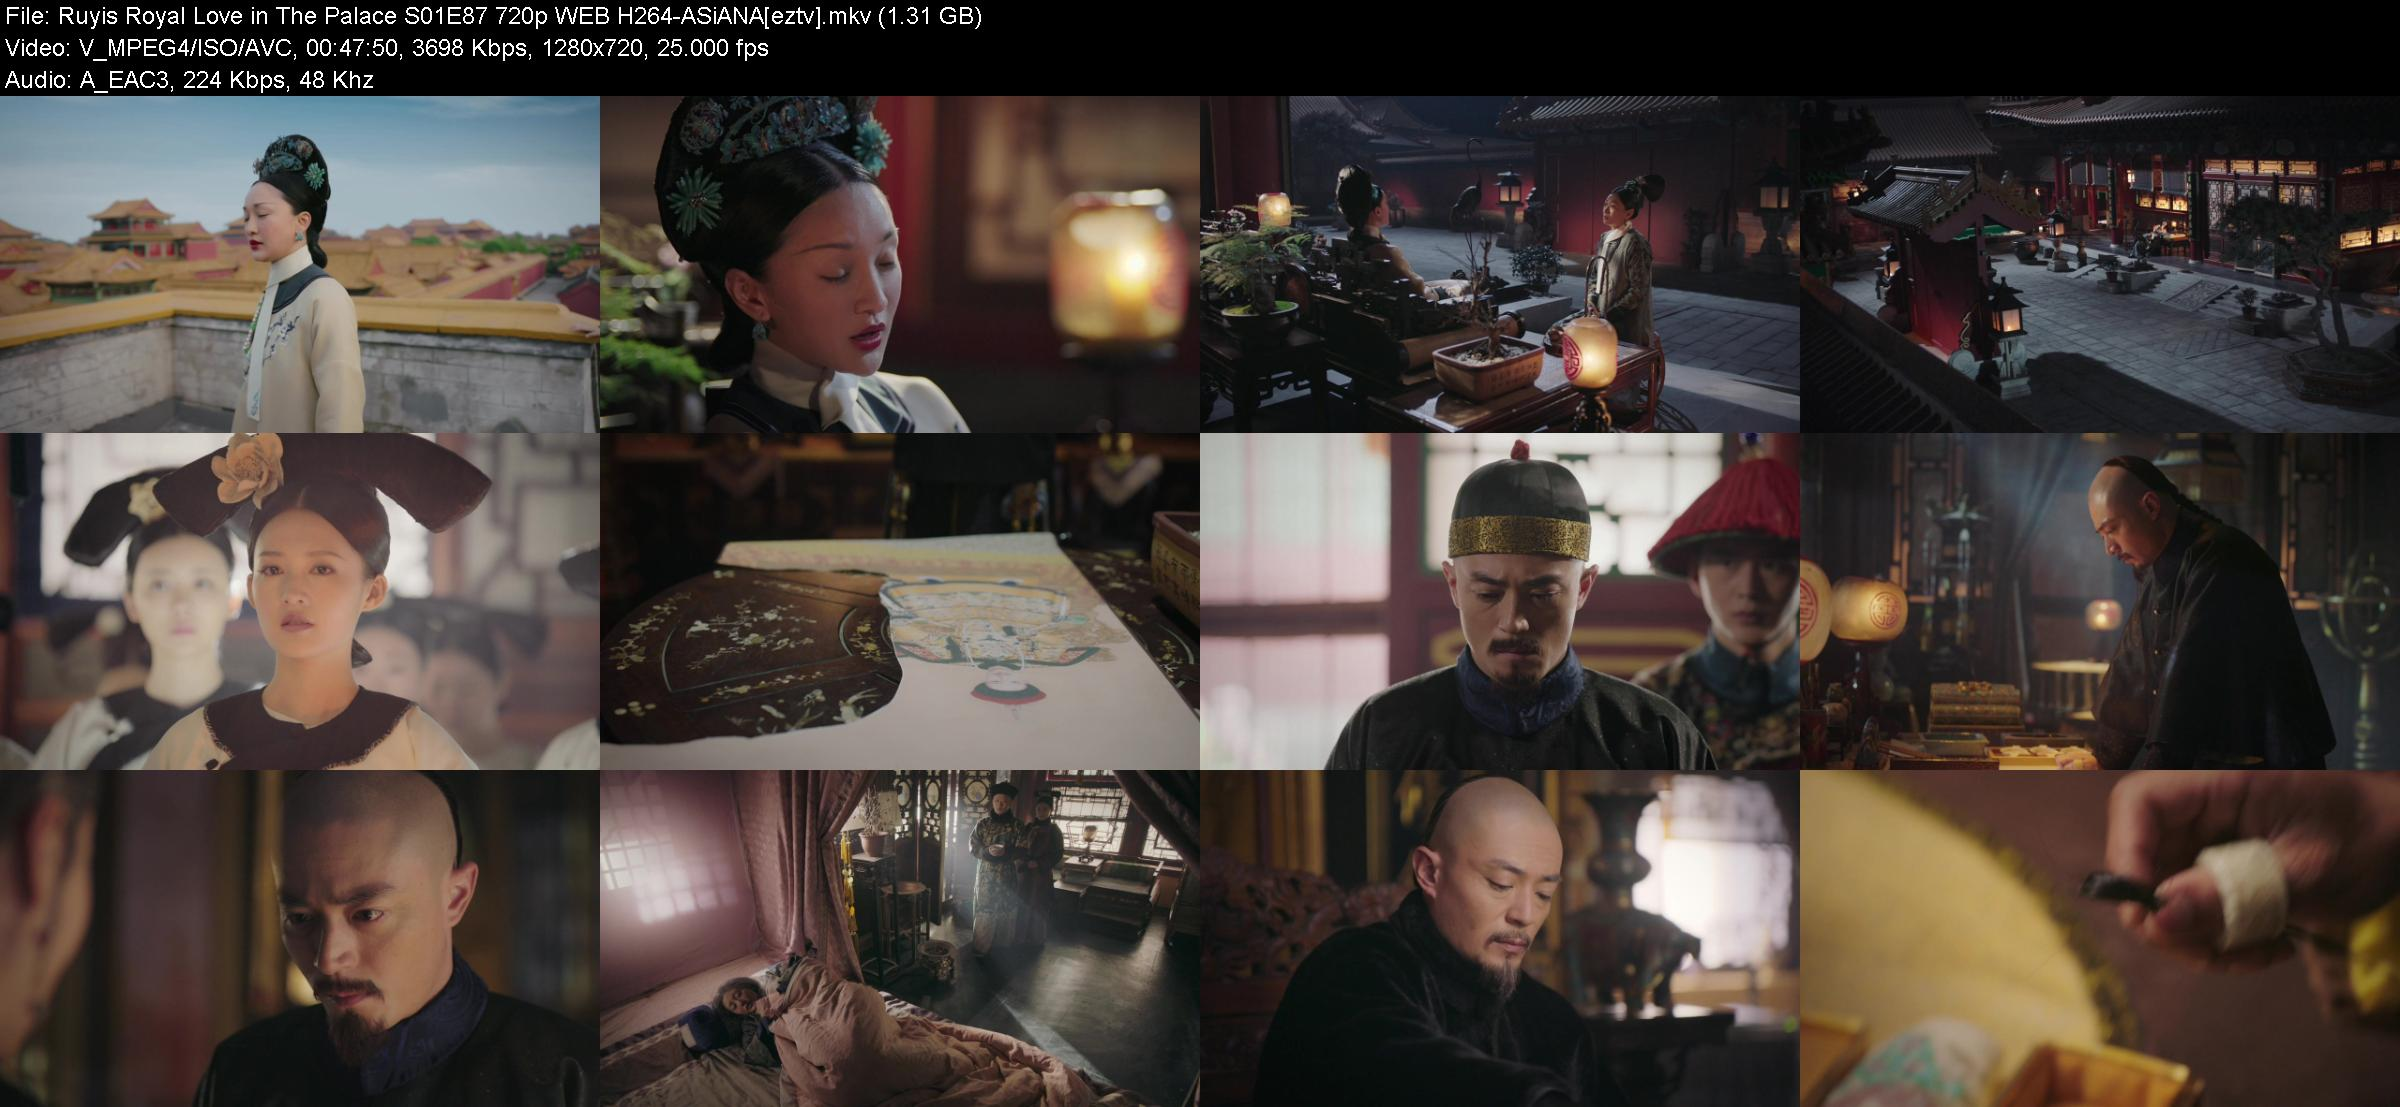 Ruyis Royal Love in The Palace S01E87 720p WEB H264-ASiANA